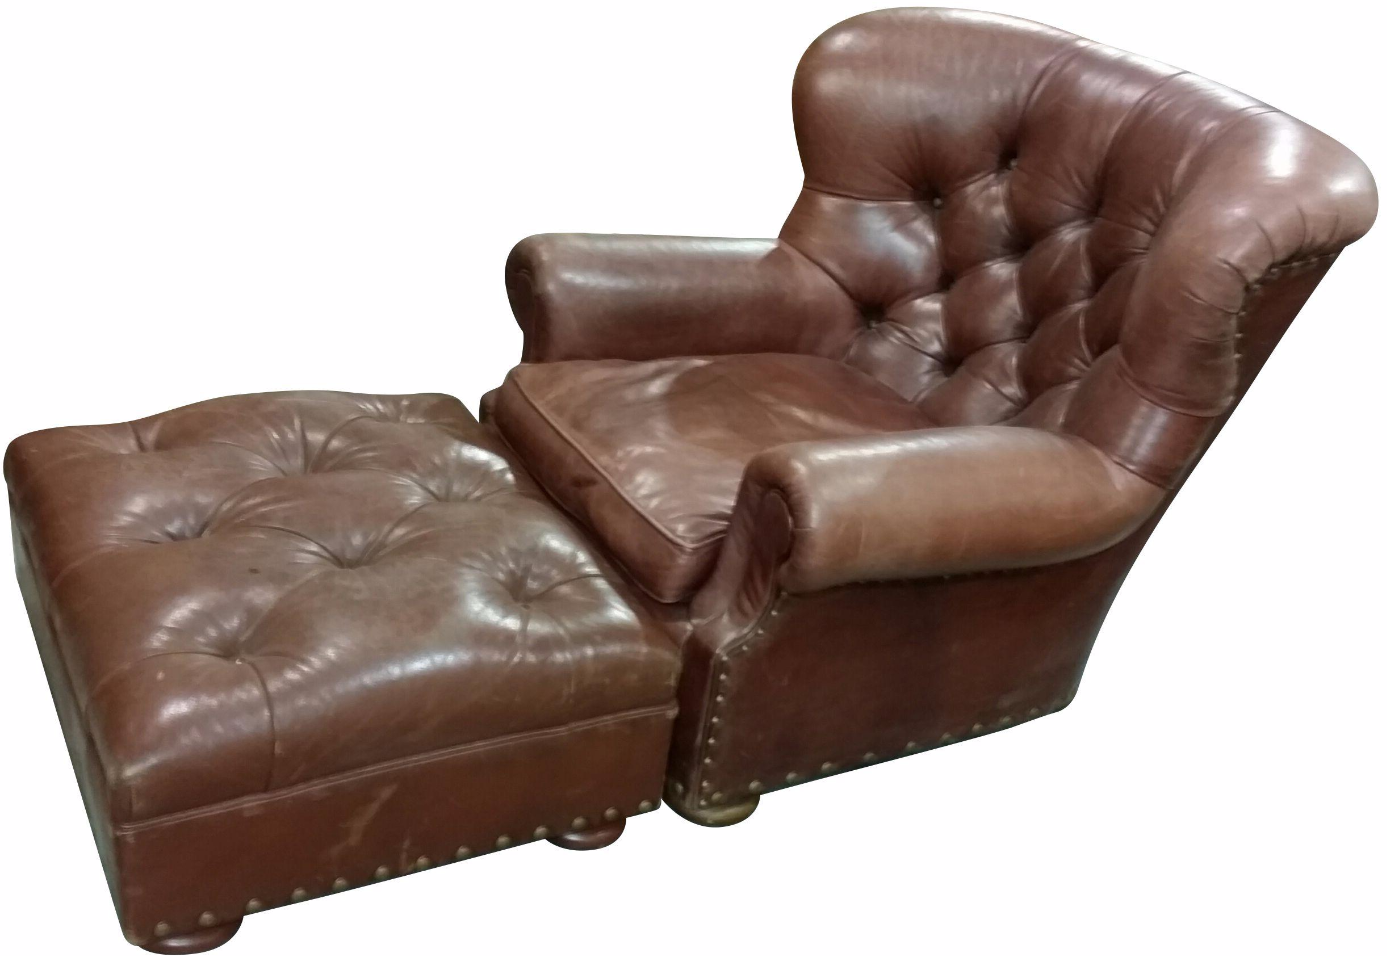 Vintage Ralph Lauren Leather Chair With Ottoman